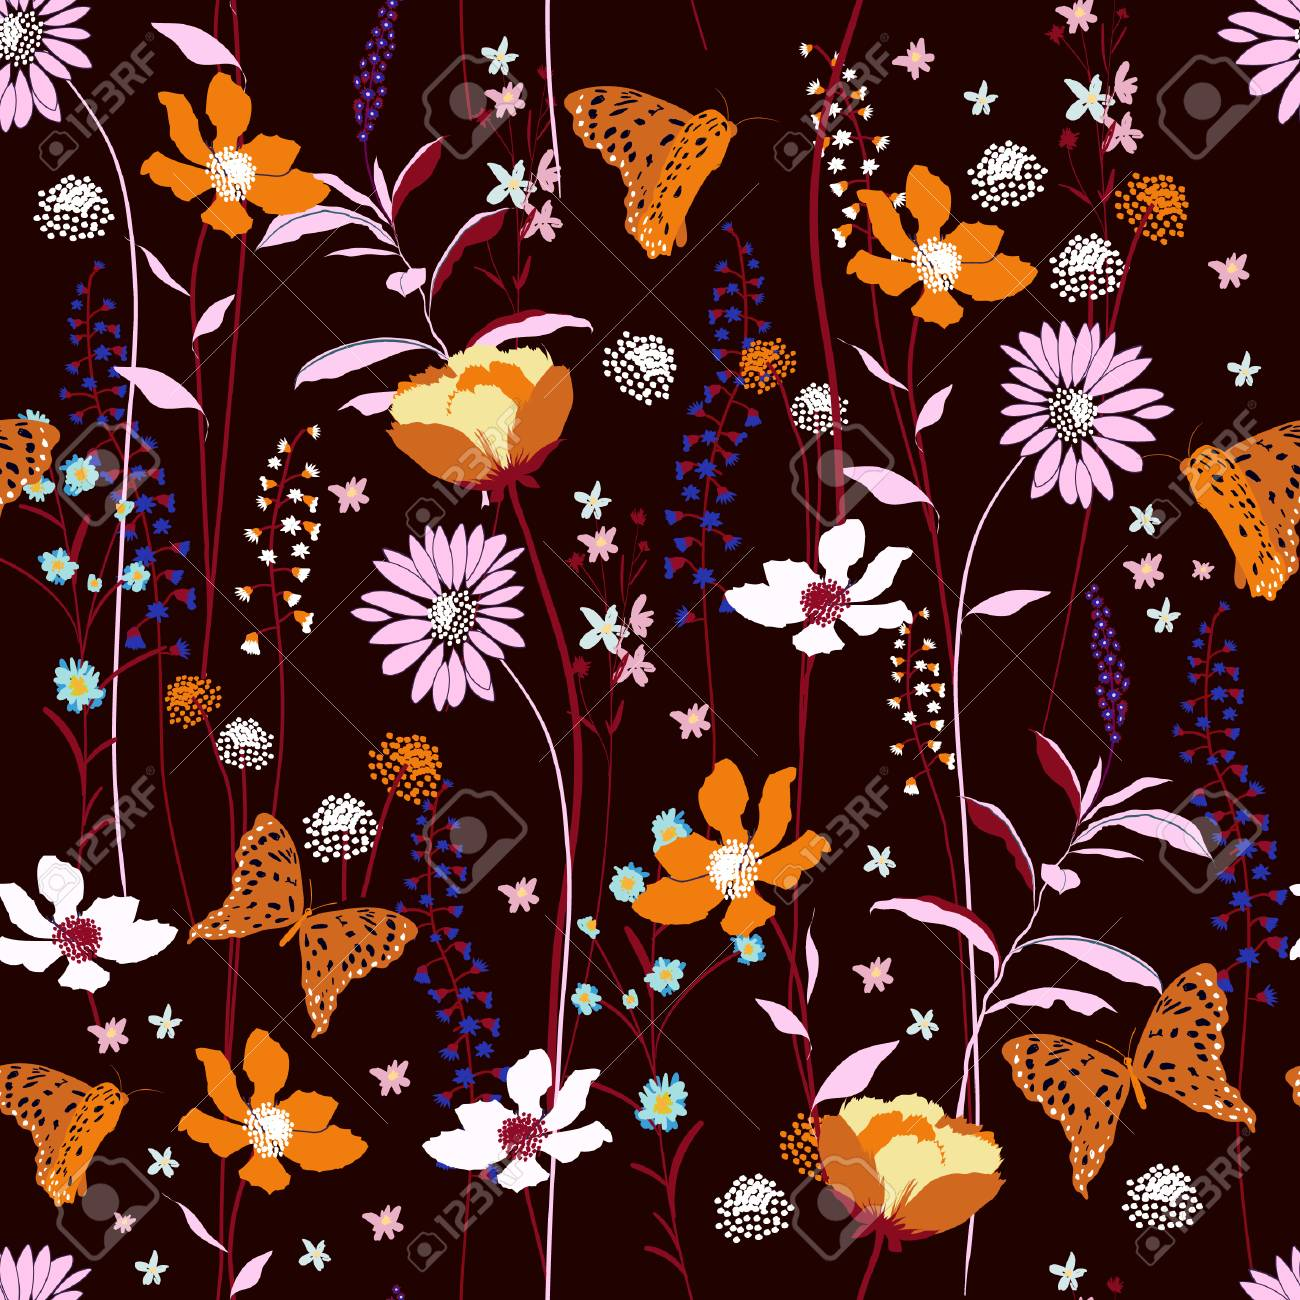 Seamless Pattern Wind Blow Flowers Isolated On Dark Maroon